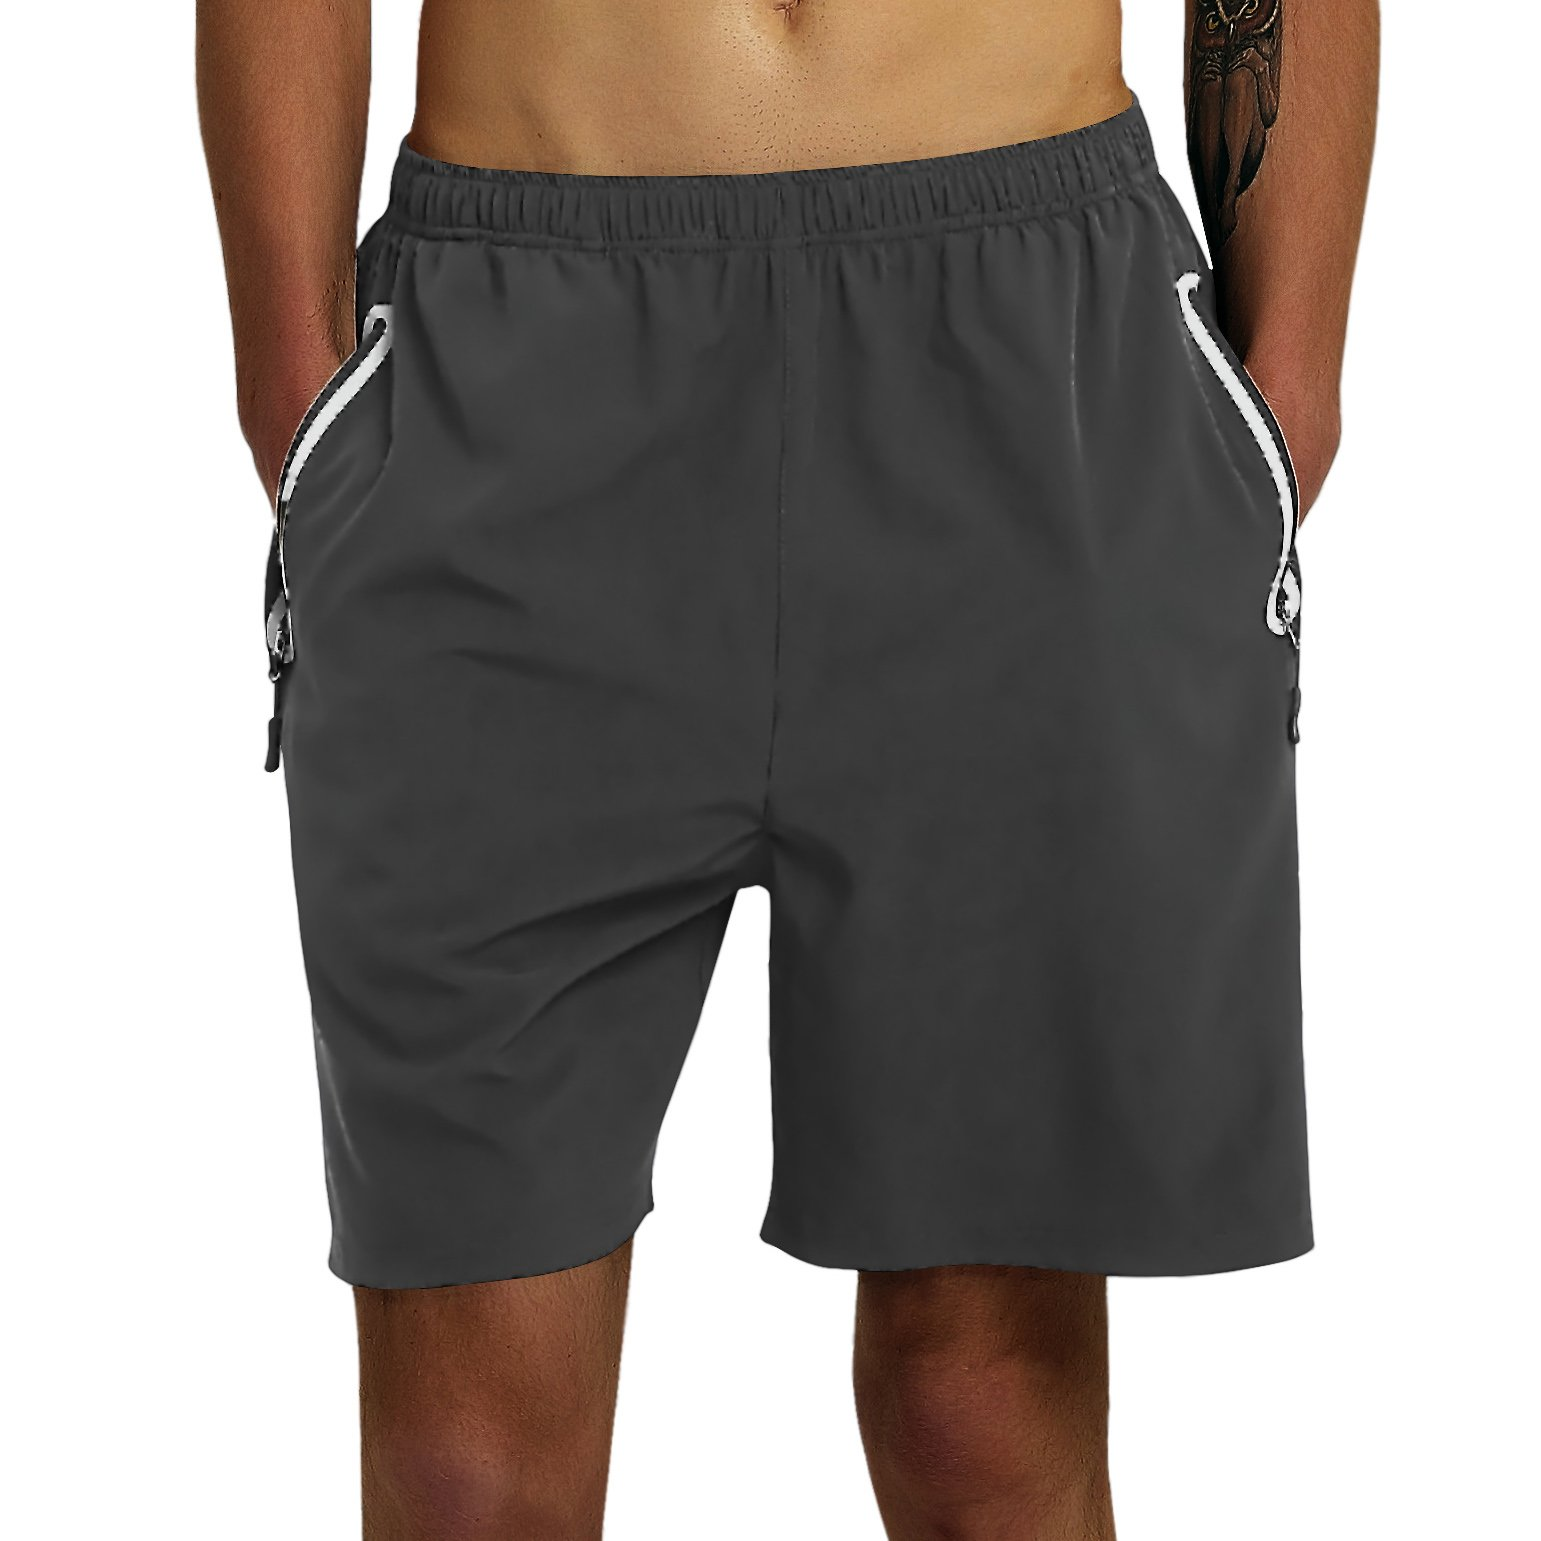 Gititlys Running Workout Shorts with Zipper Pockets Quick Dry Lightweight